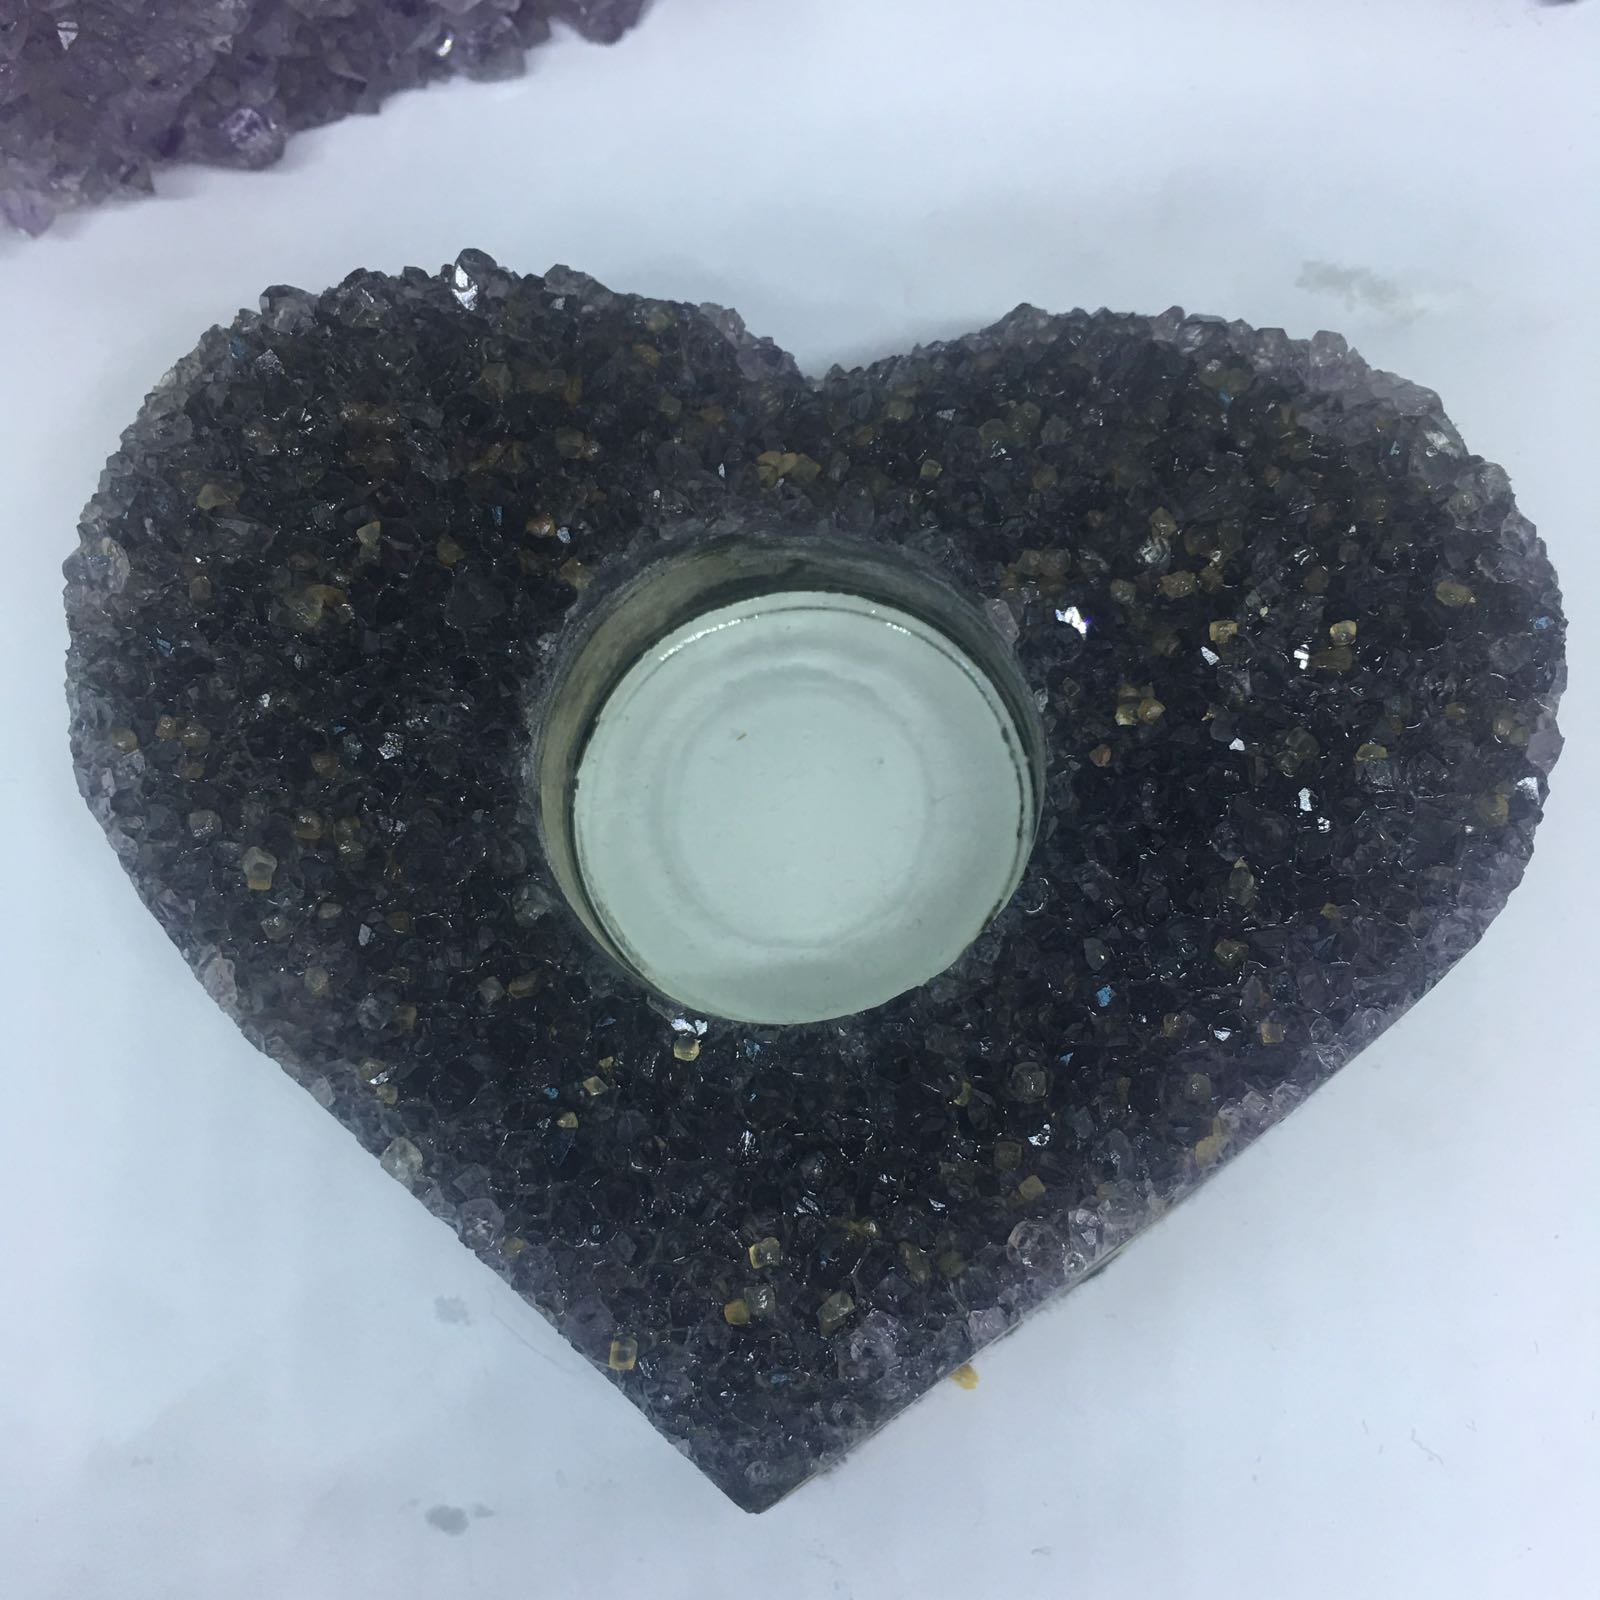 Stones from Uruguay - Amethyst  Heart Tealight Candle Holder, Purple Raw Handmade  Amethyst Druzy Crystal Cluster Heart